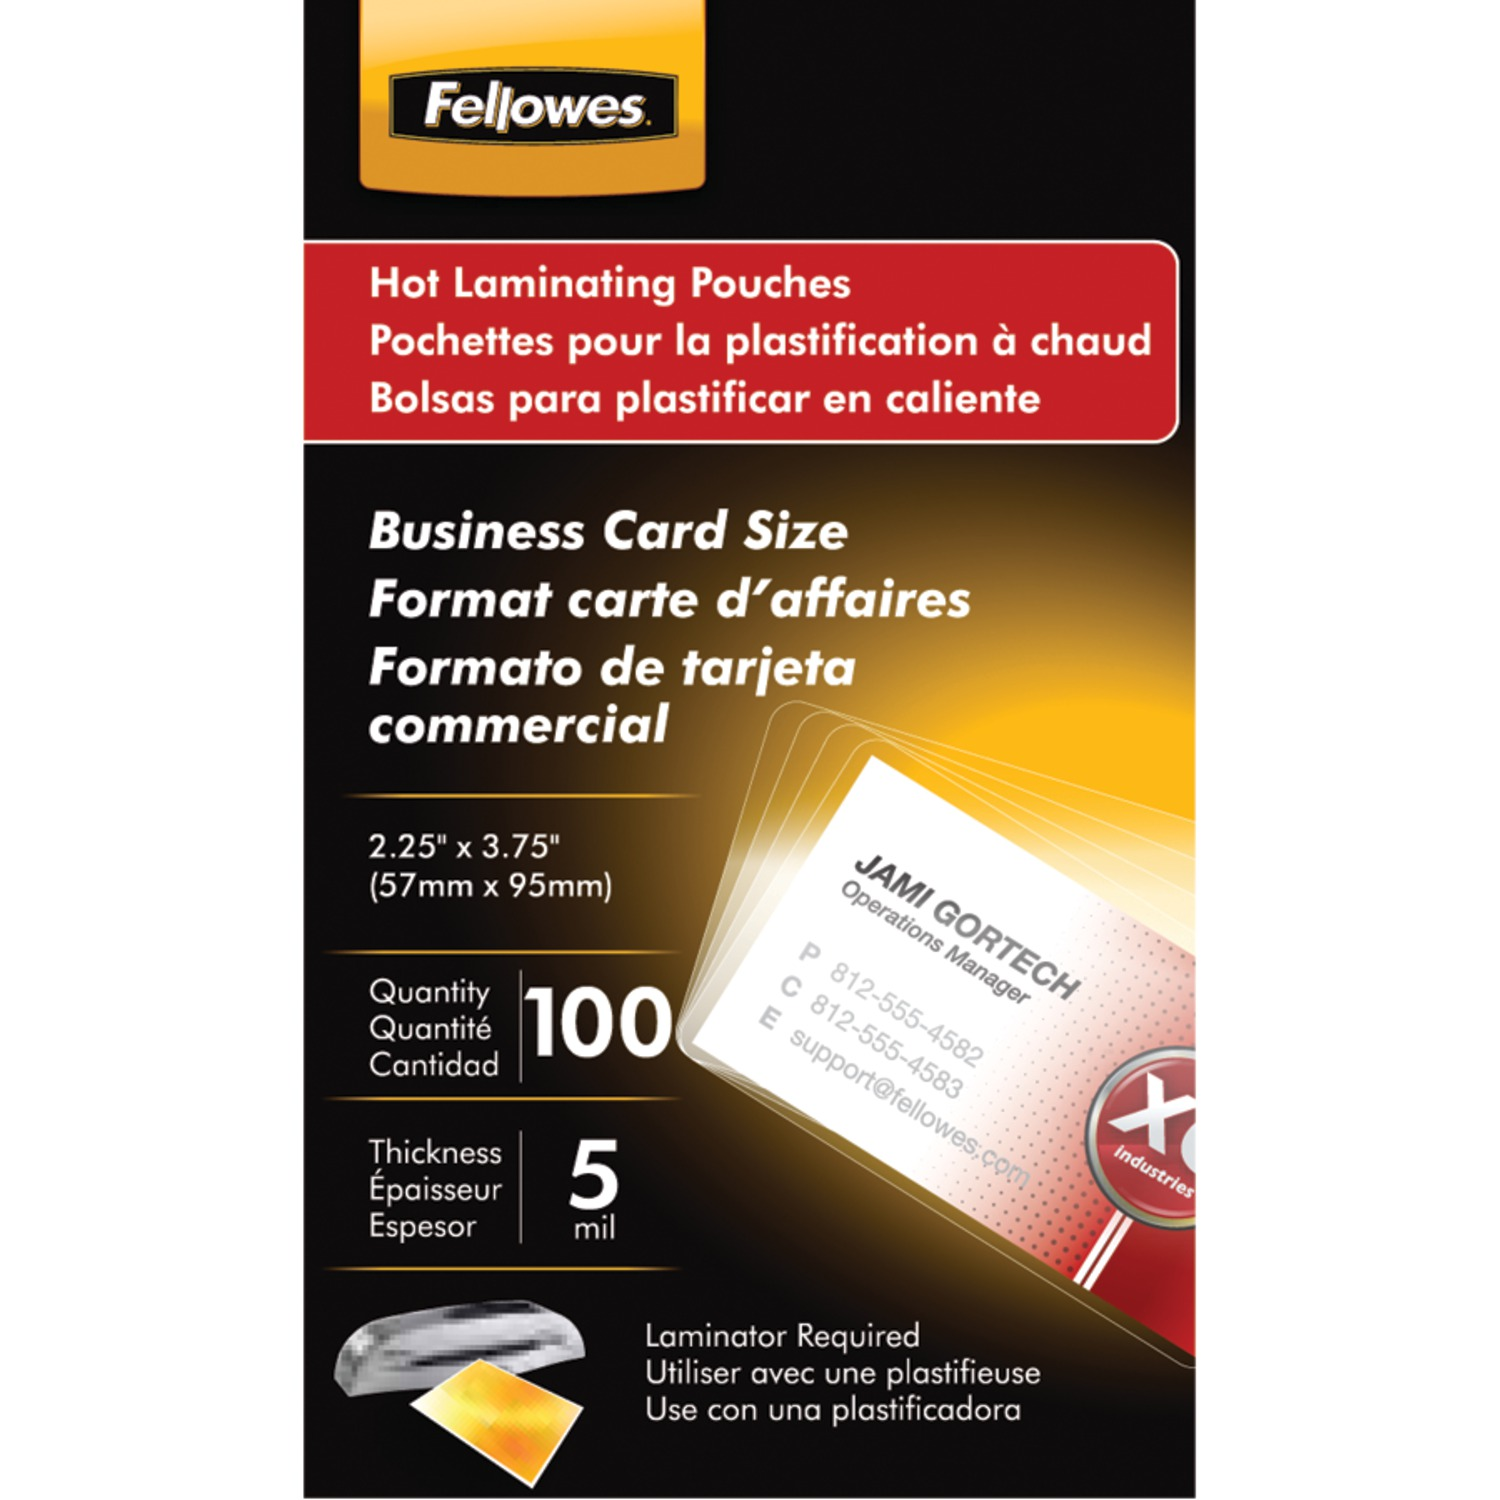 Fellowes 52031 business card laminating pouches 100 pk fellowes 52031 business card laminating pouches 100 pk reheart Choice Image